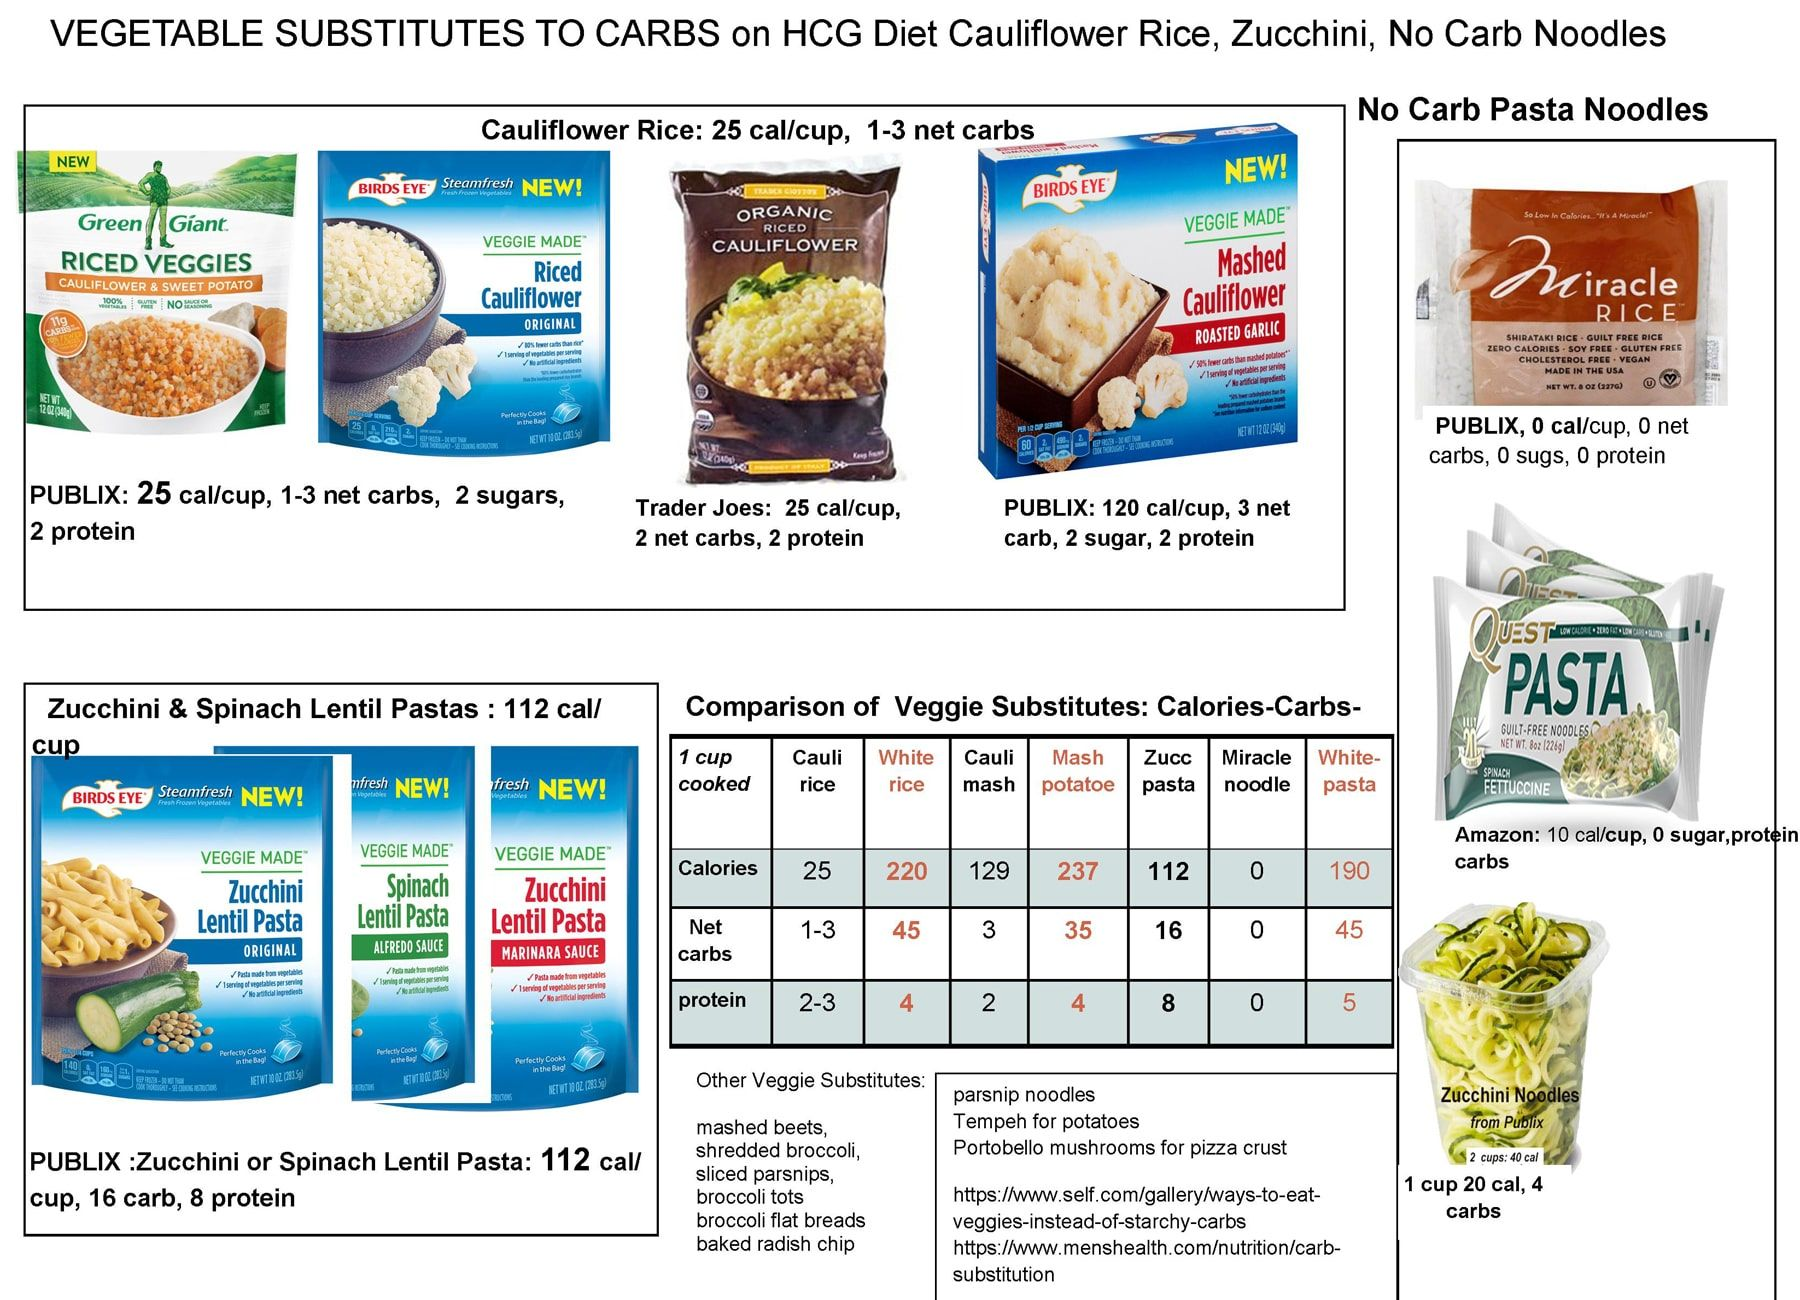 Eliminating All Carbs From The Hcg Diet Is Difficult For Many Dieters New Widely Available